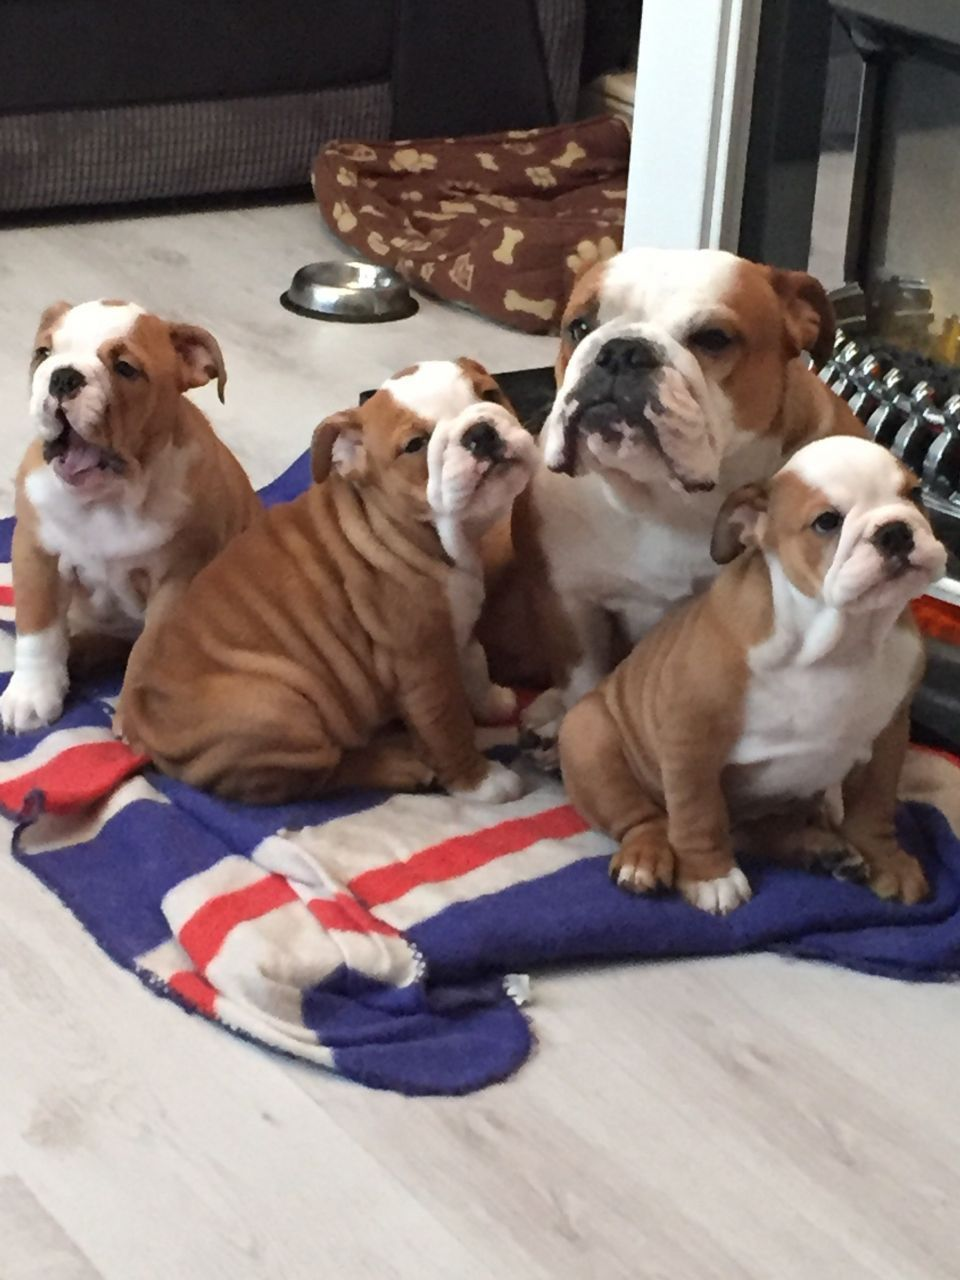 Kc Reg Female English Bulldog Puppy Last One Bulldog Puppies